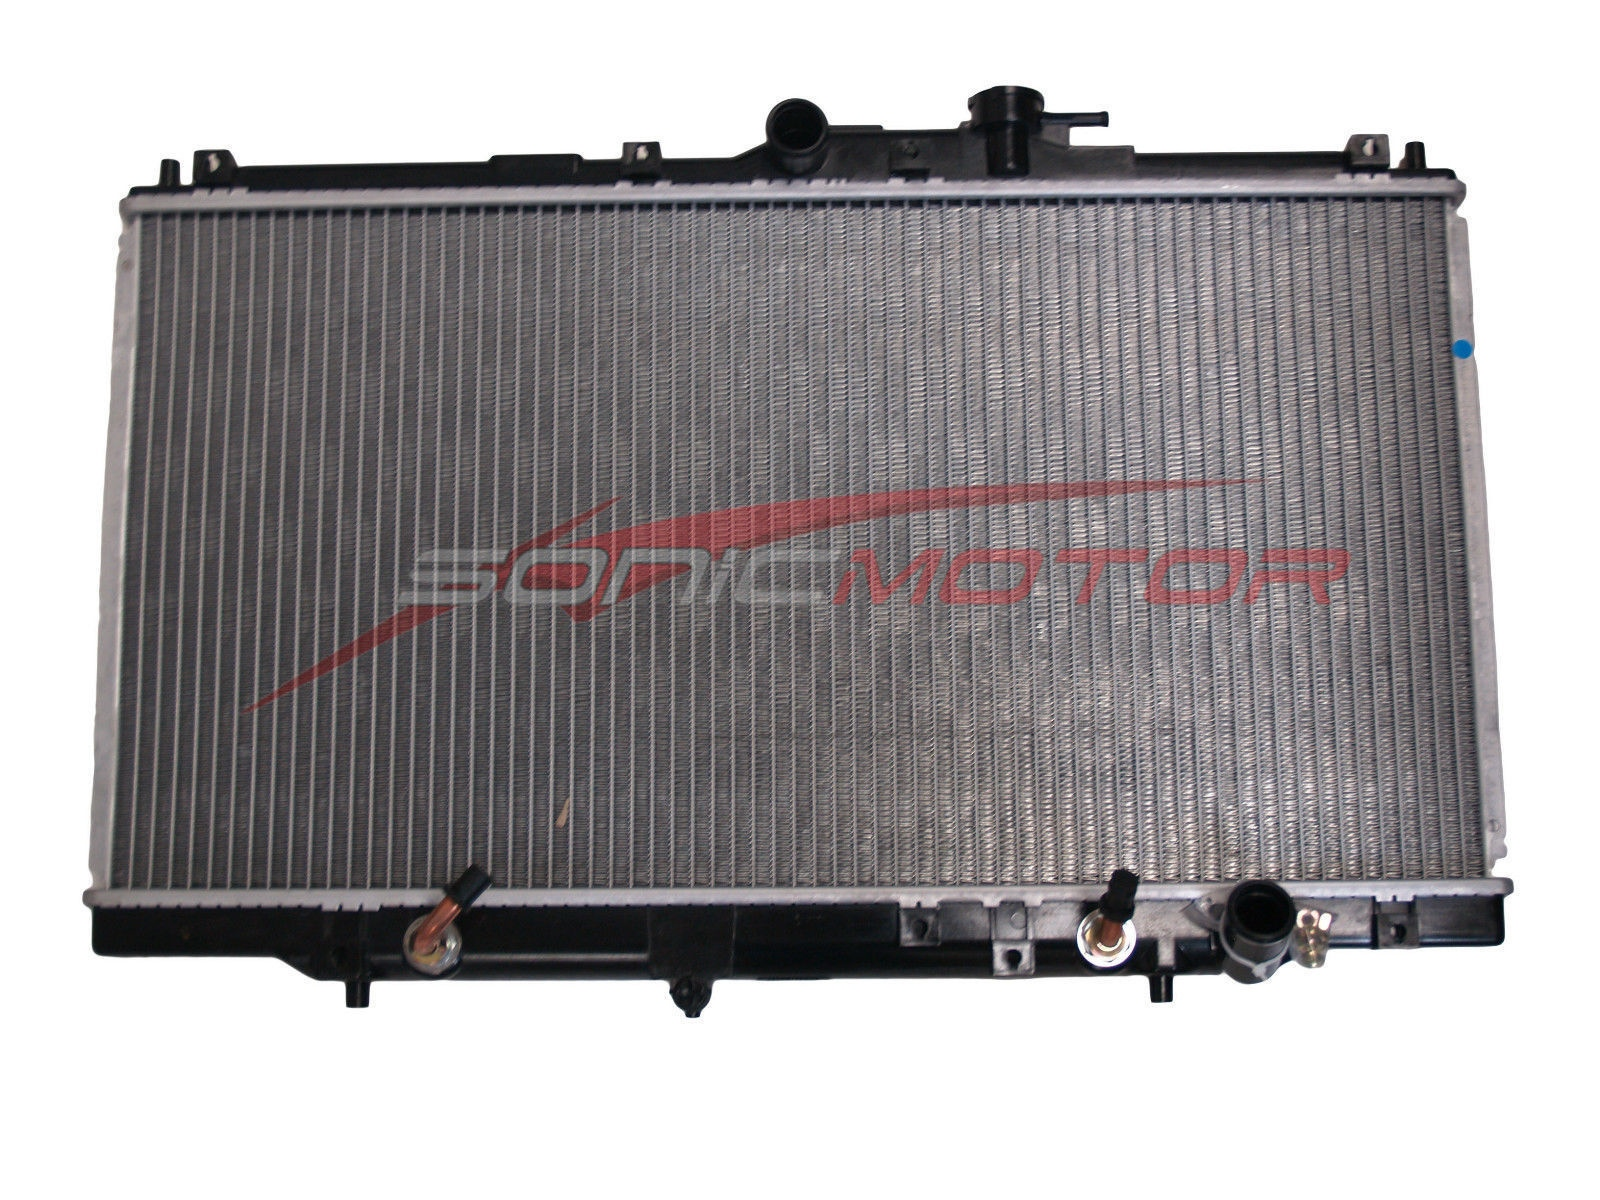 For Honda Accord Radiator 94 95 96 97 AUTOMATIC & MANUAL TRANS